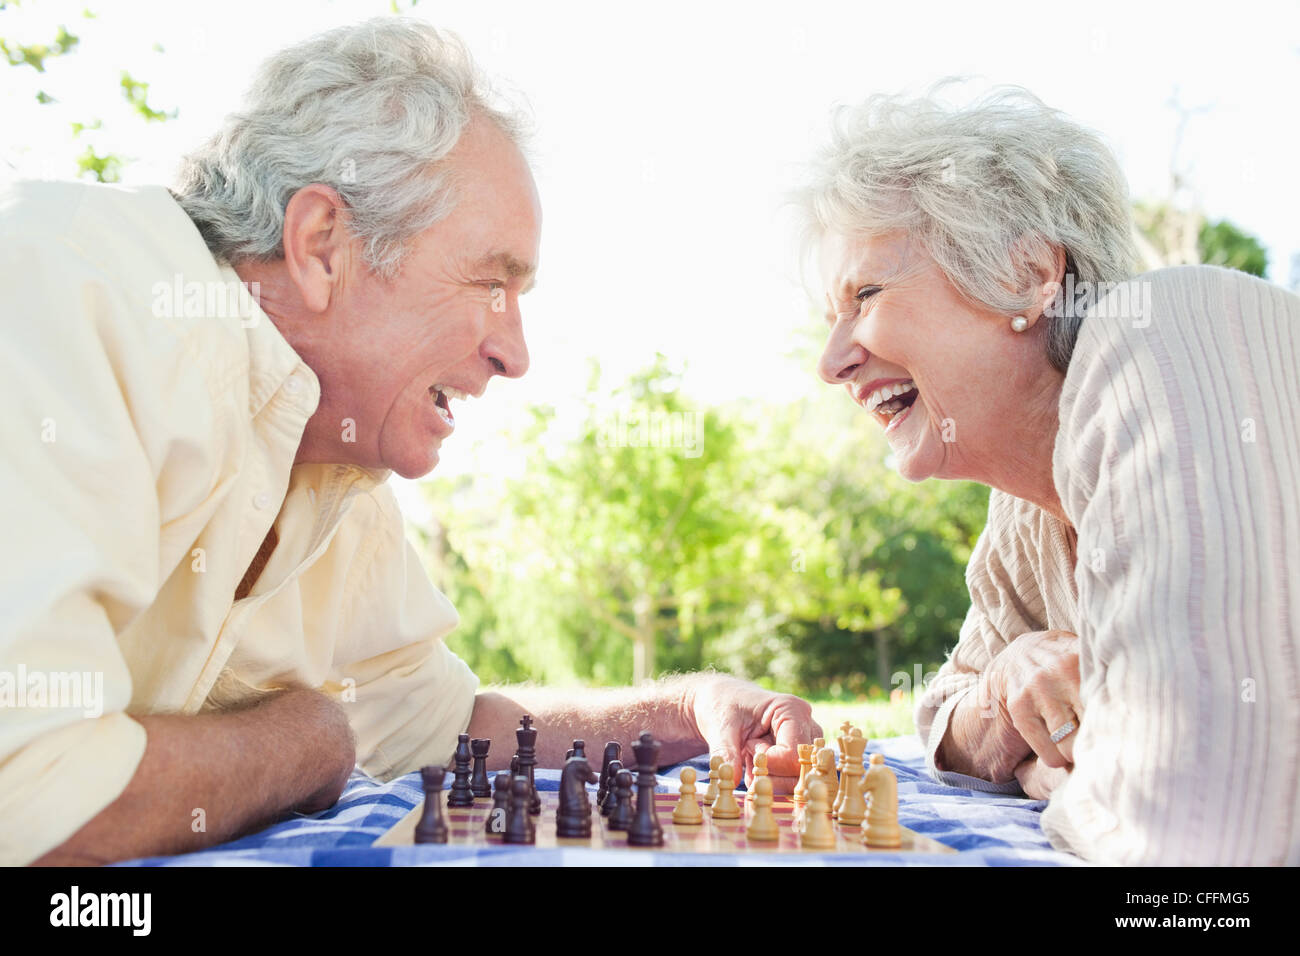 Two friends laughing while playing chess Stock Photo